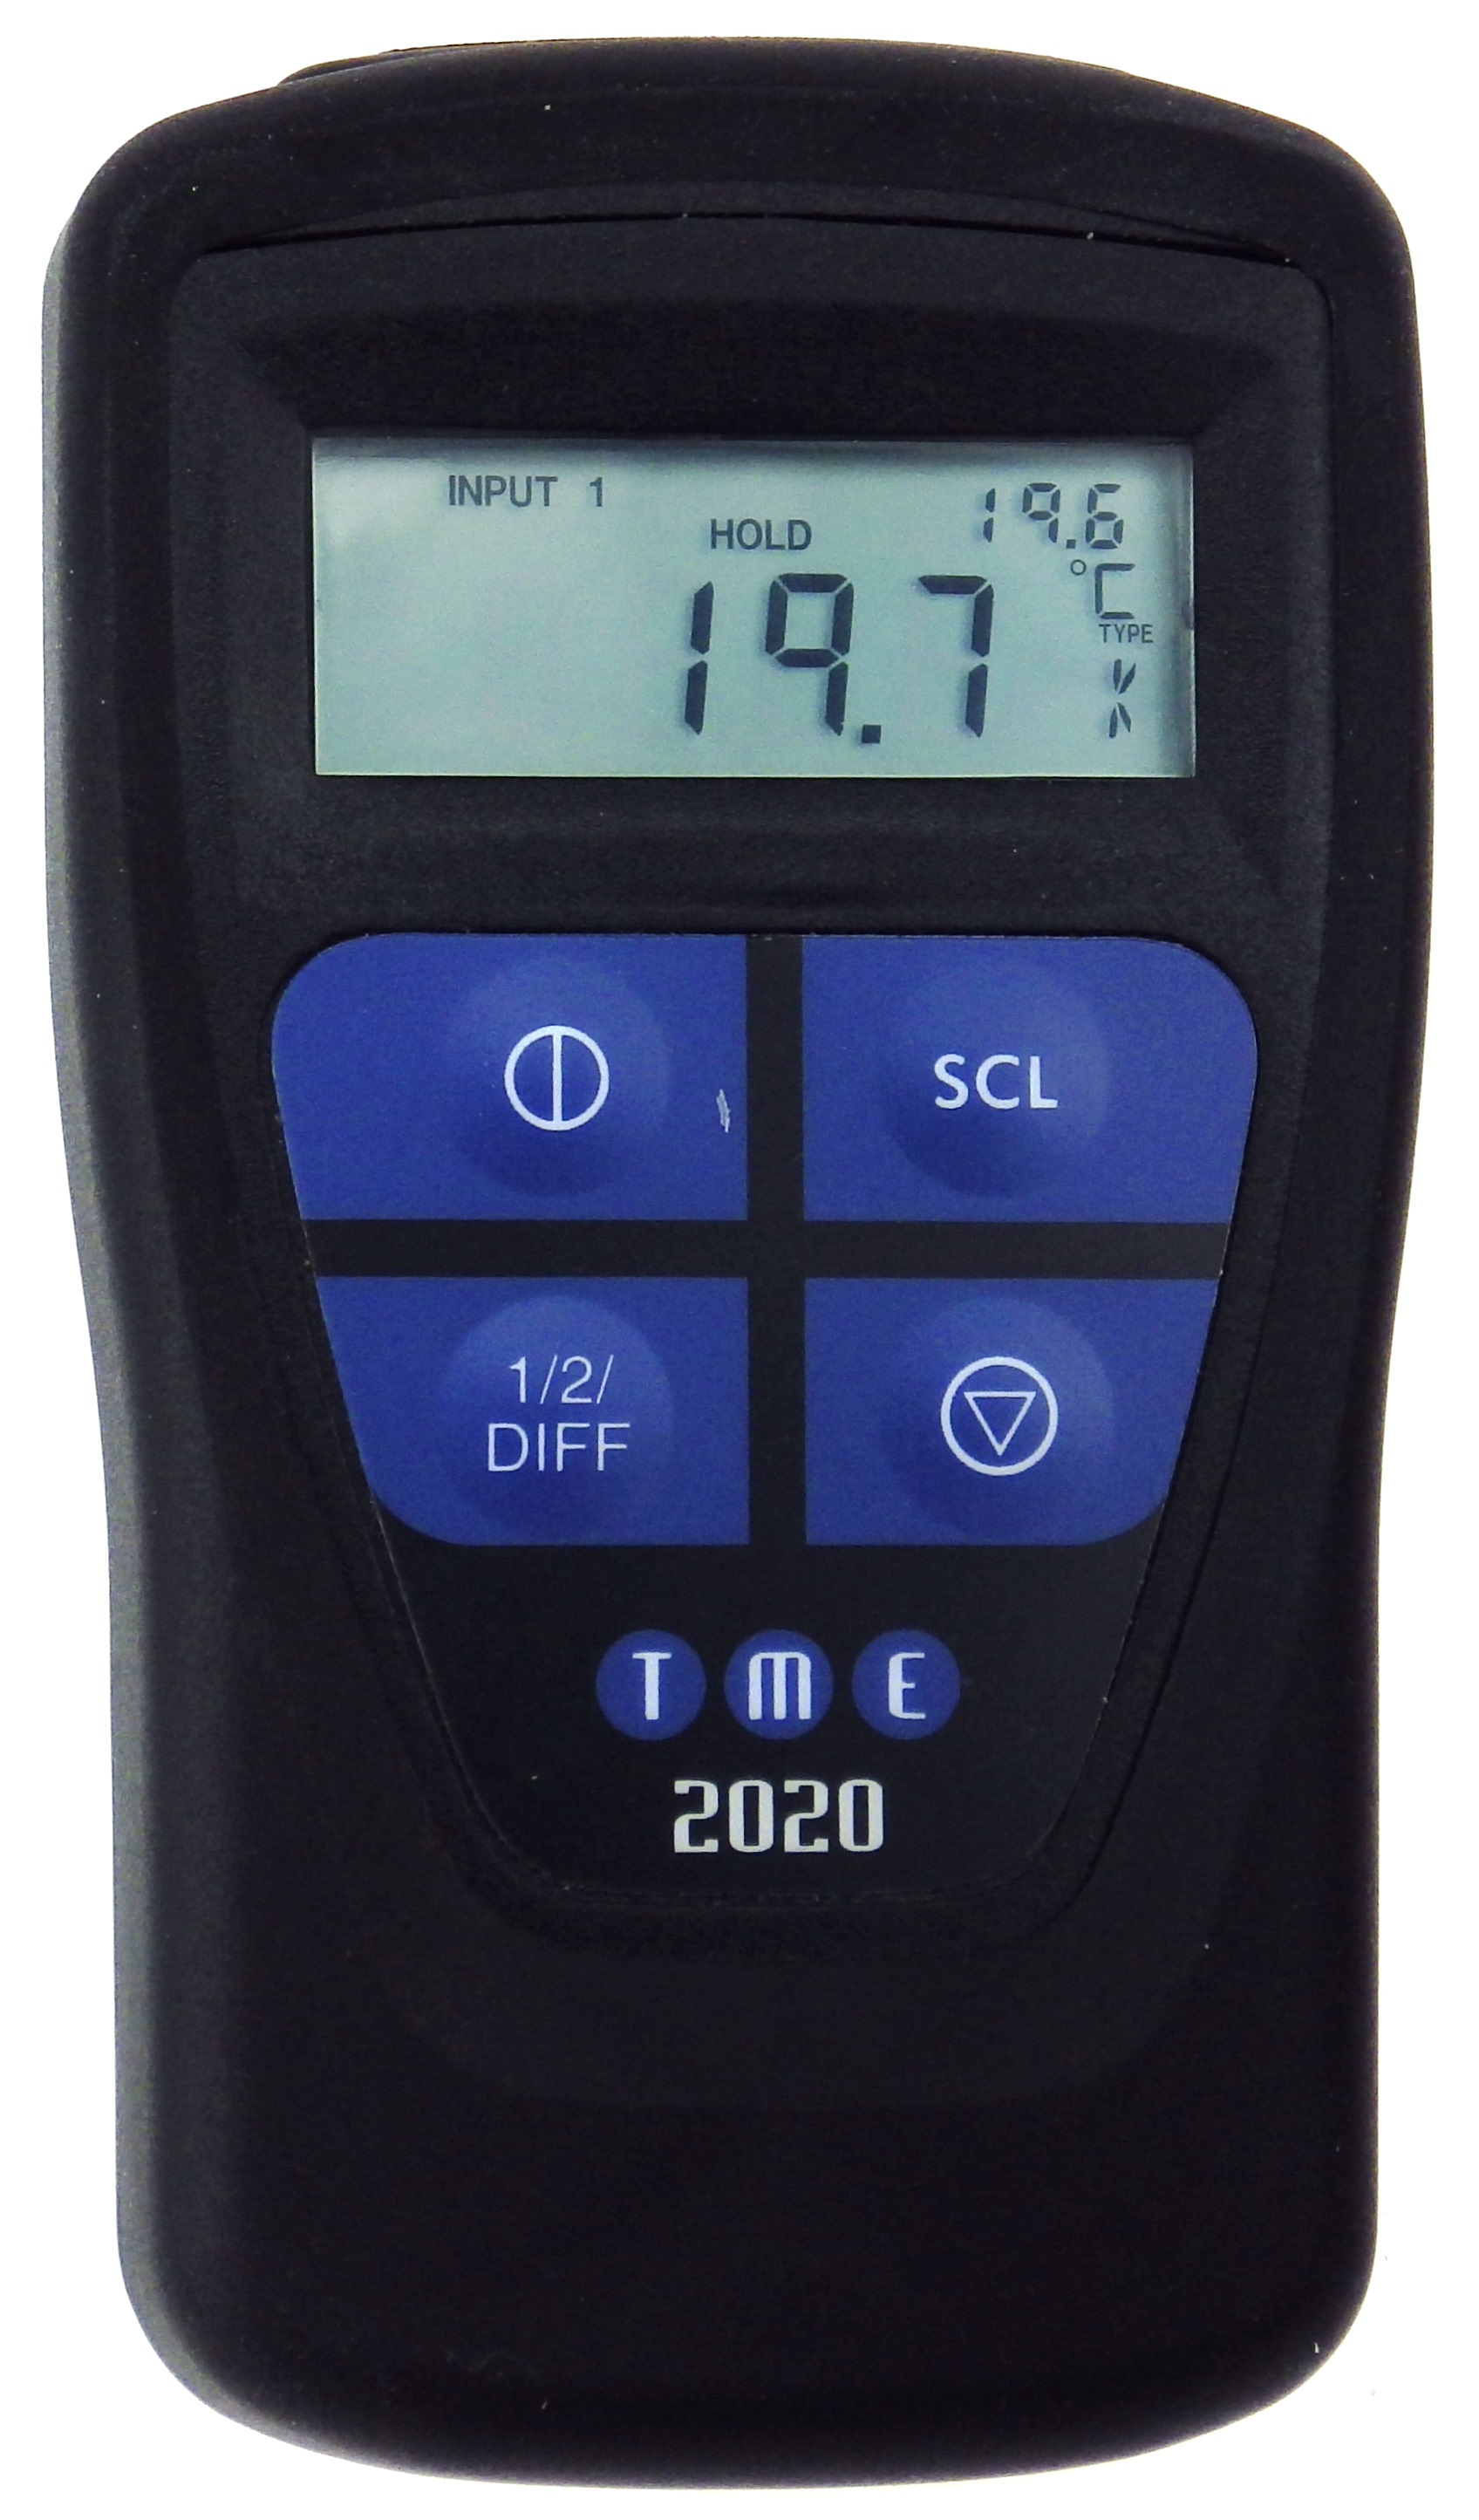 This Waterproof, Self-Calibrating Thermometer has dual input and infra-red capability, along with se...